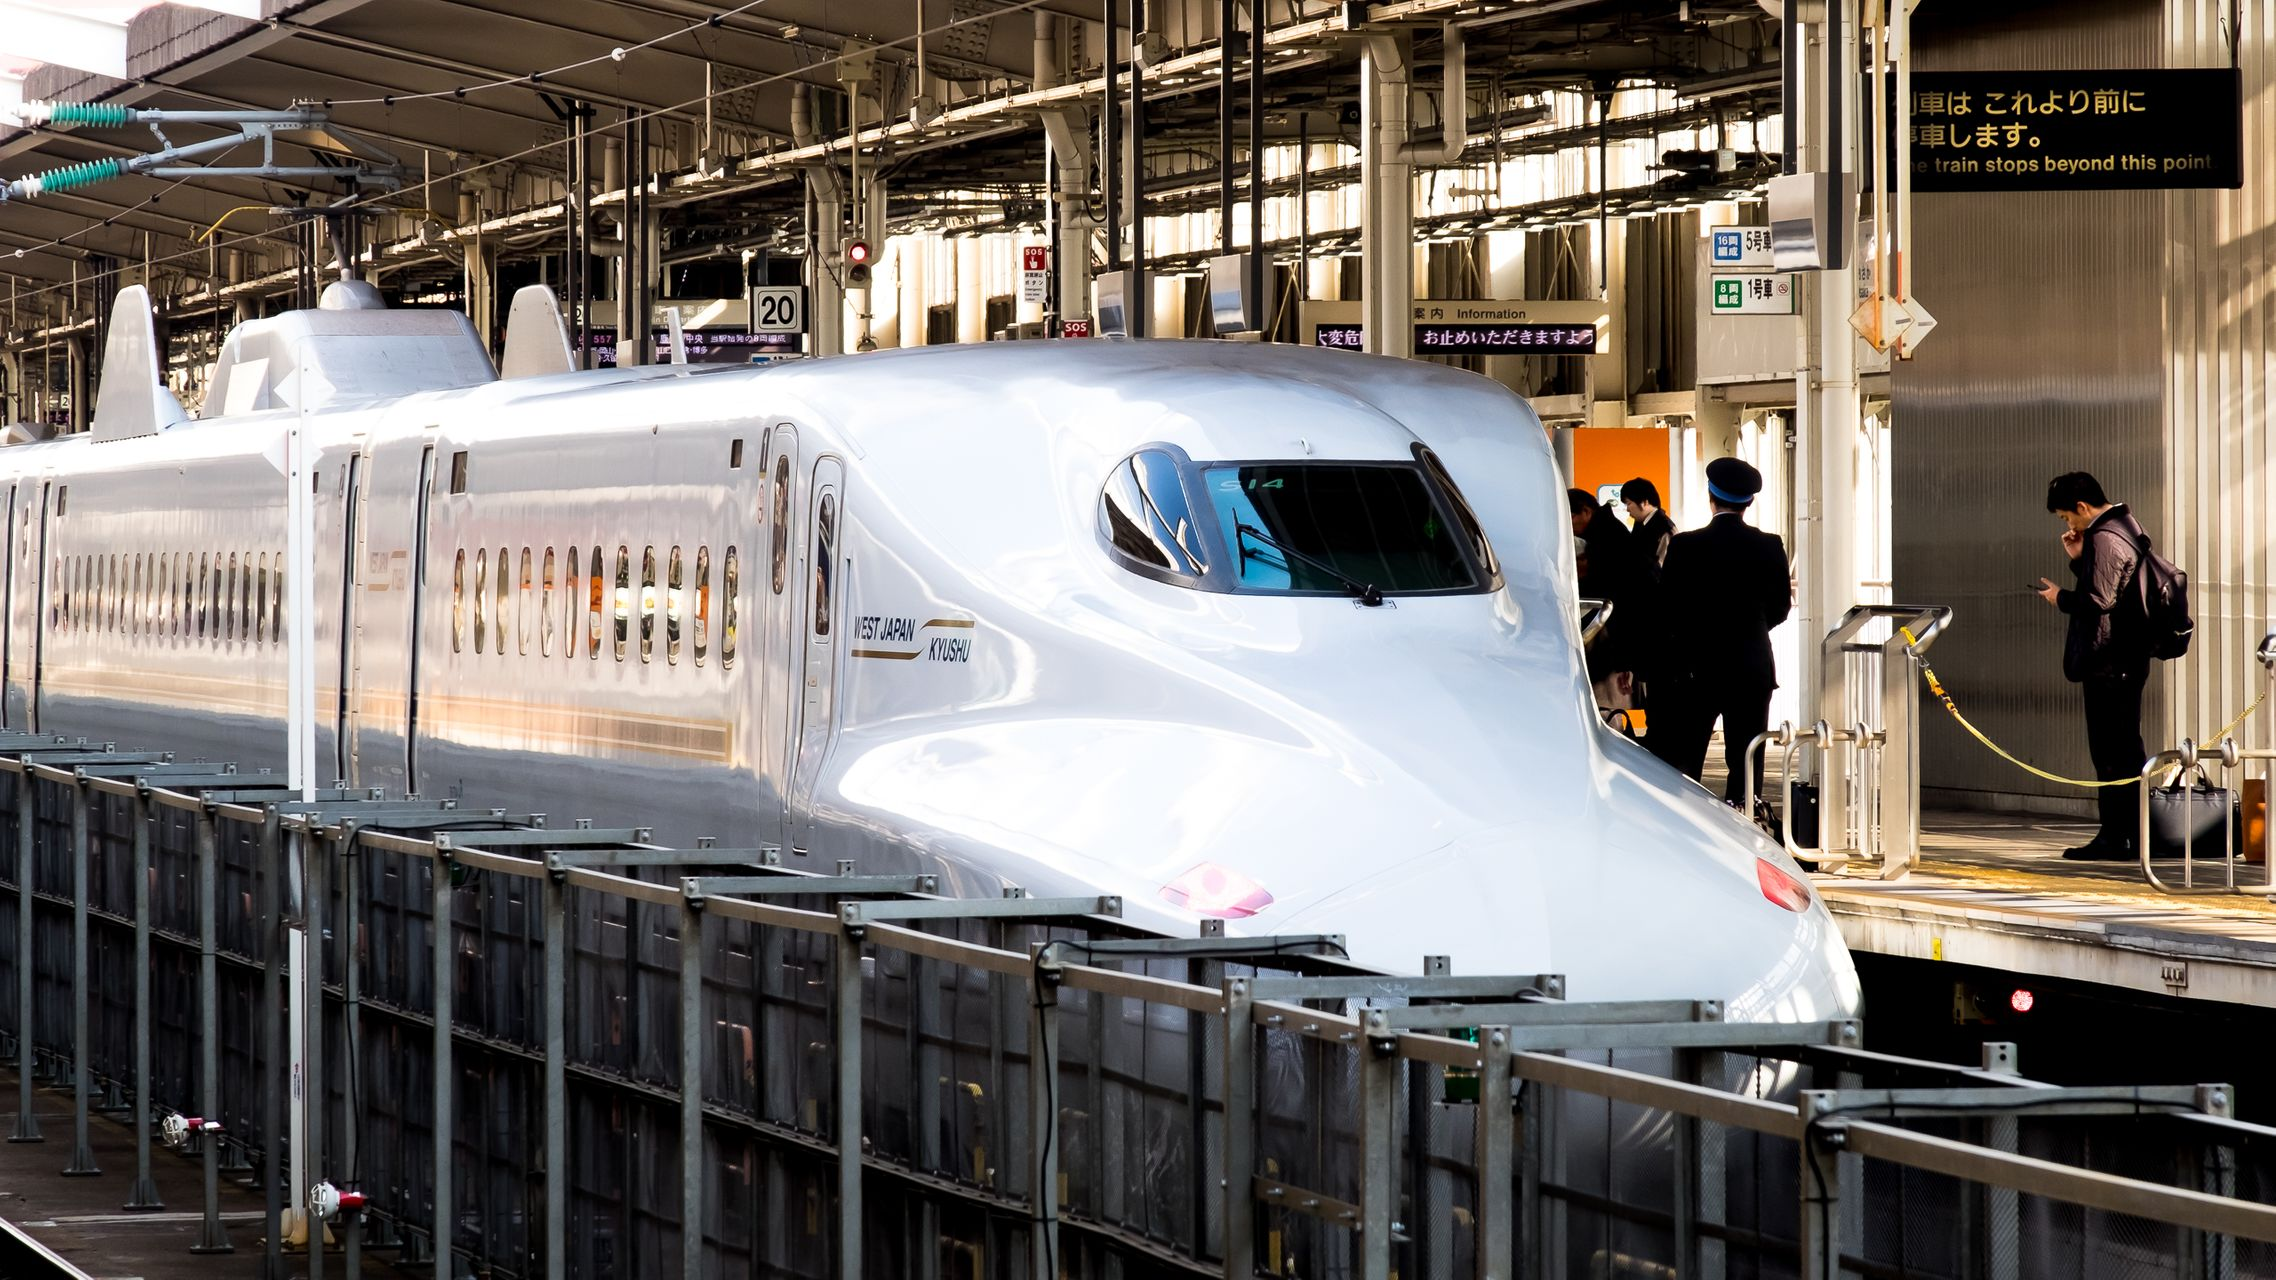 Japan bullet train, Shinkansen N700